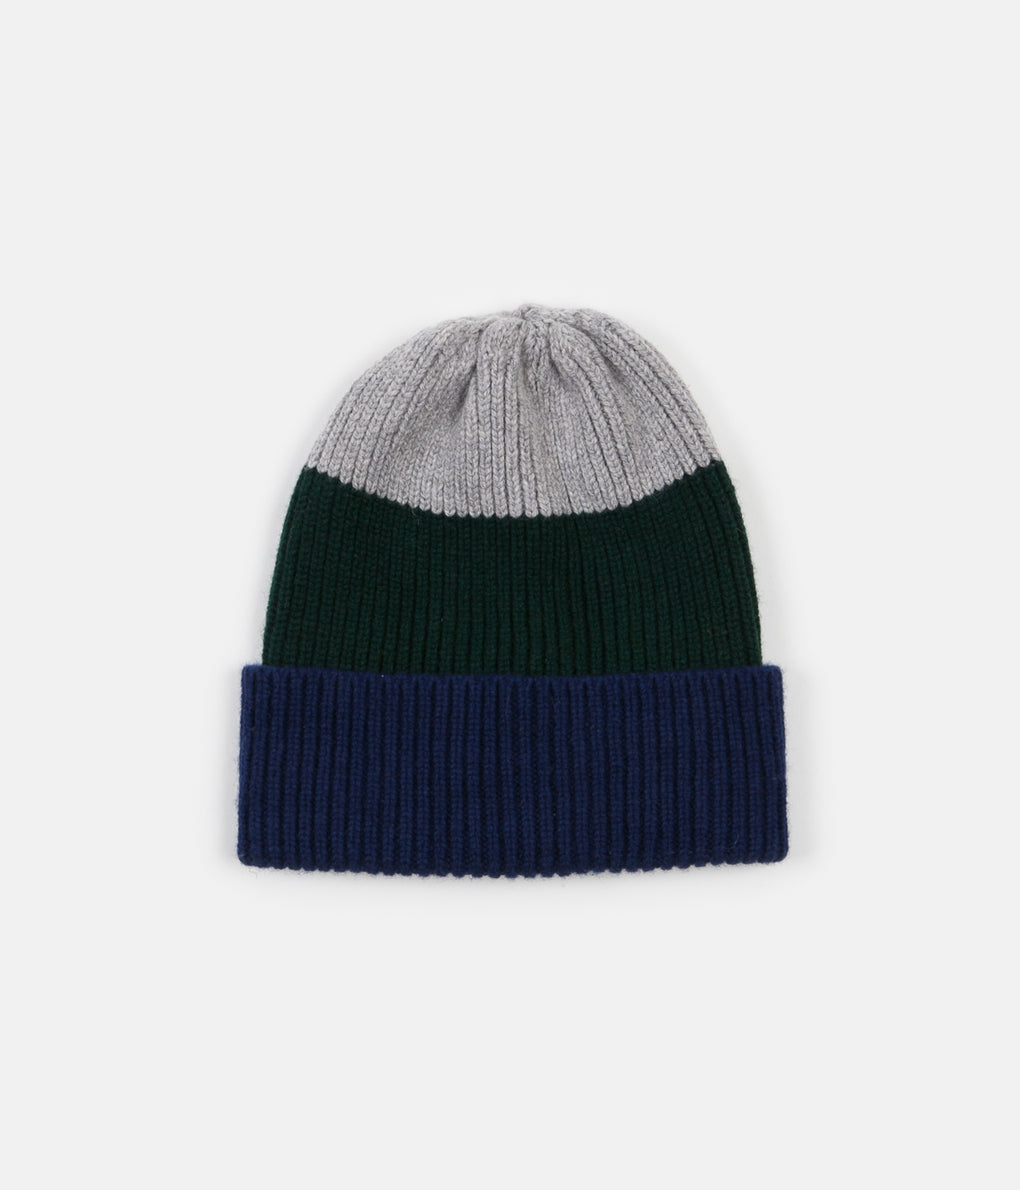 Country Of Origin Watch Hat - Grey / Green / Navy